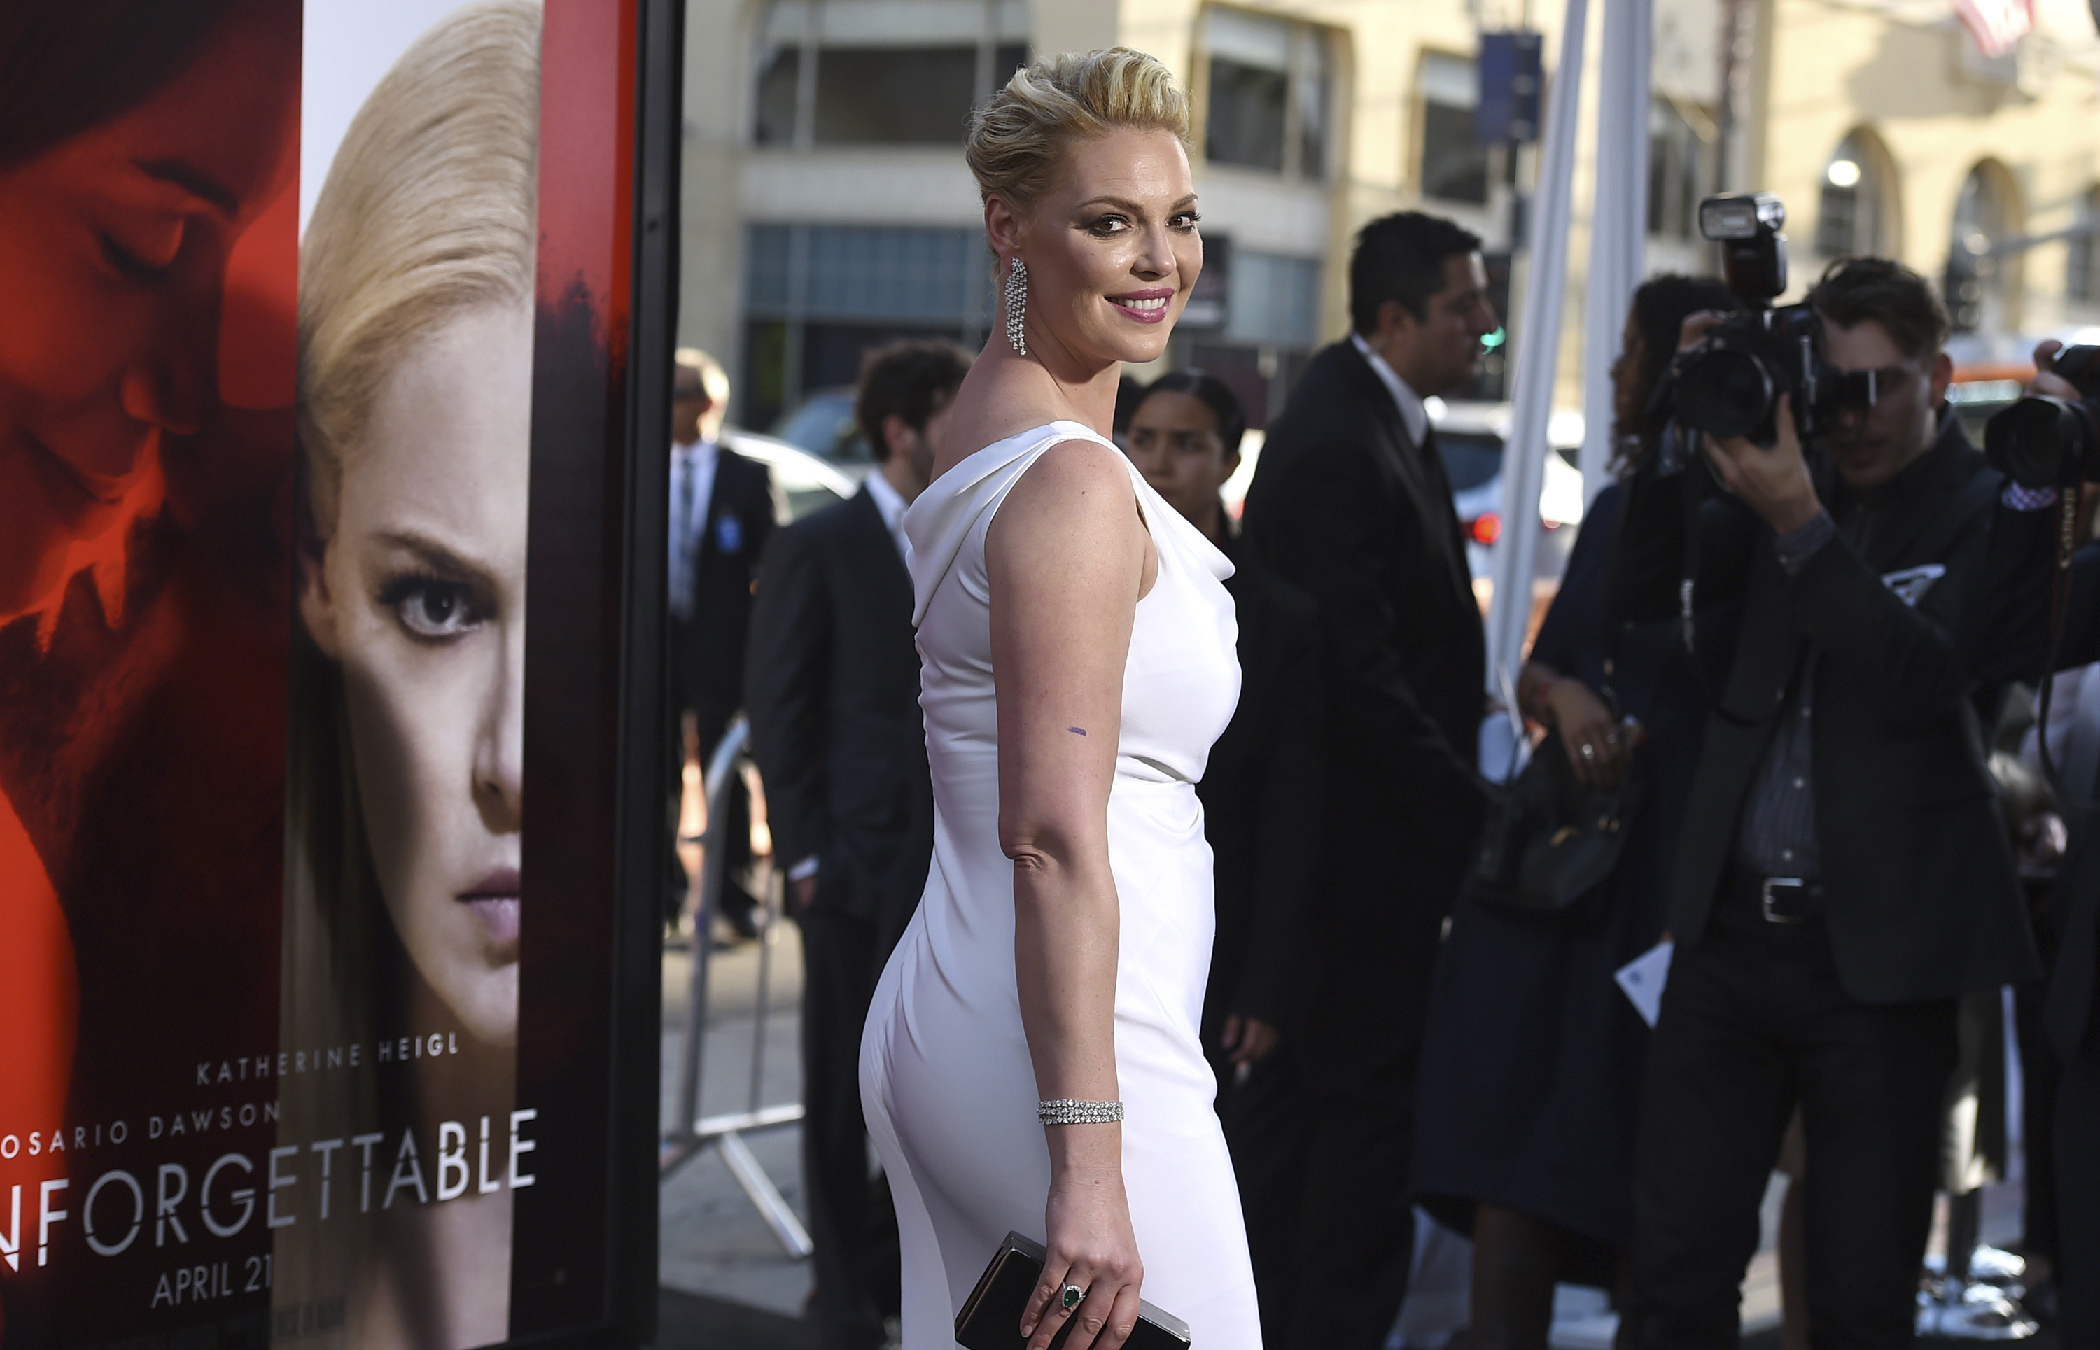 Katherine Heigl arrives at the Los Angeles premiere of  Unforgettable  at the TCL Chinese Theatre on Tuesday, April 18, 2017.